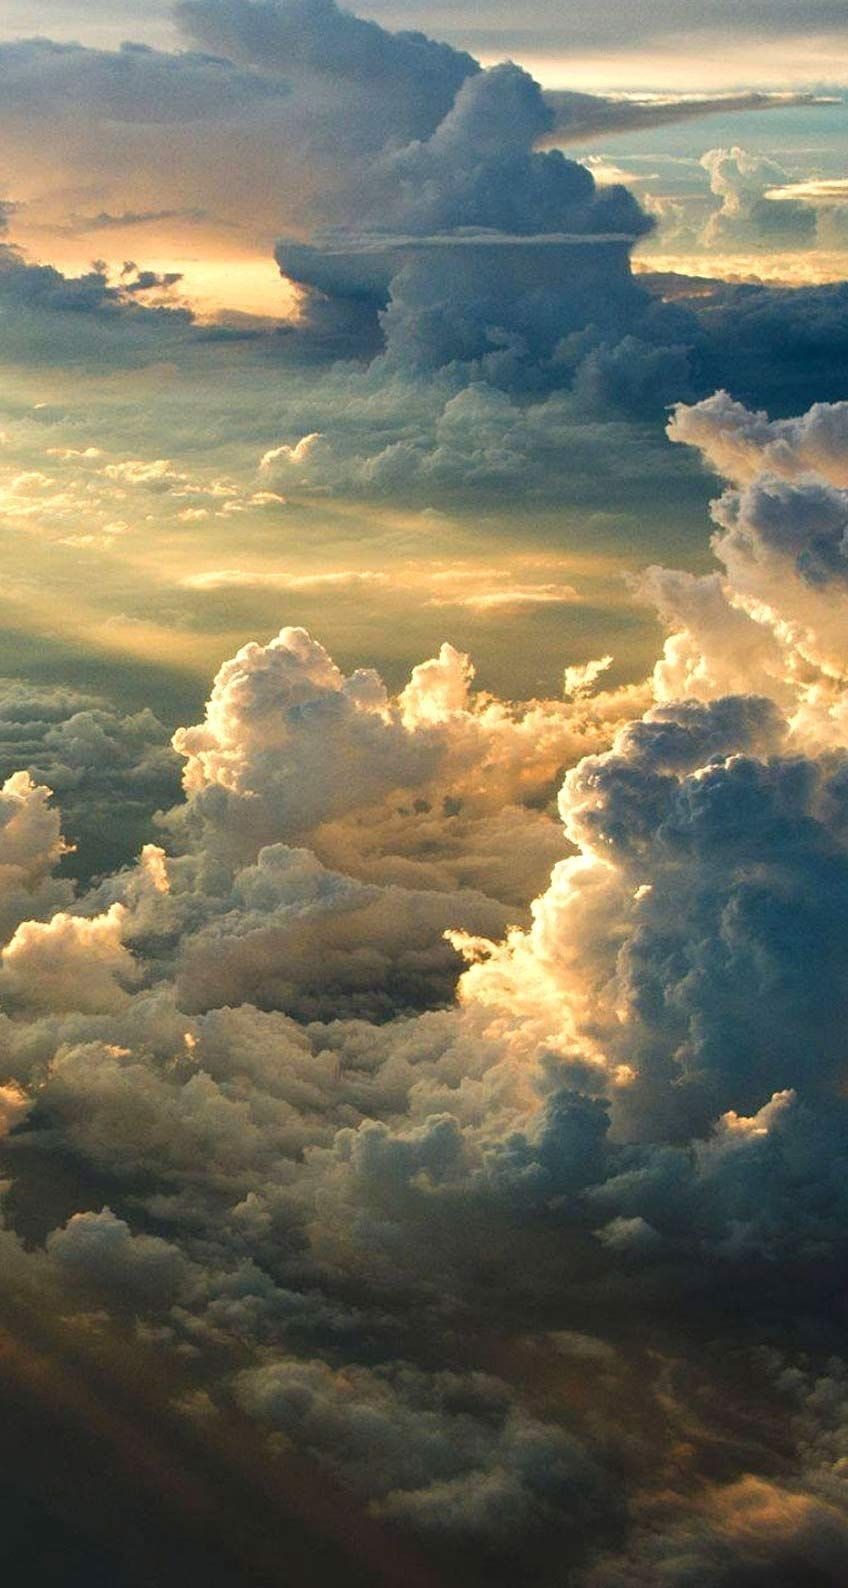 Pin By Madison Laks On IPhone Wallpapers In 2018 Clouds Sky Nature Beautiful Cloudy Sunset Wallpaper - simplechurch.us #newyearwallpaper